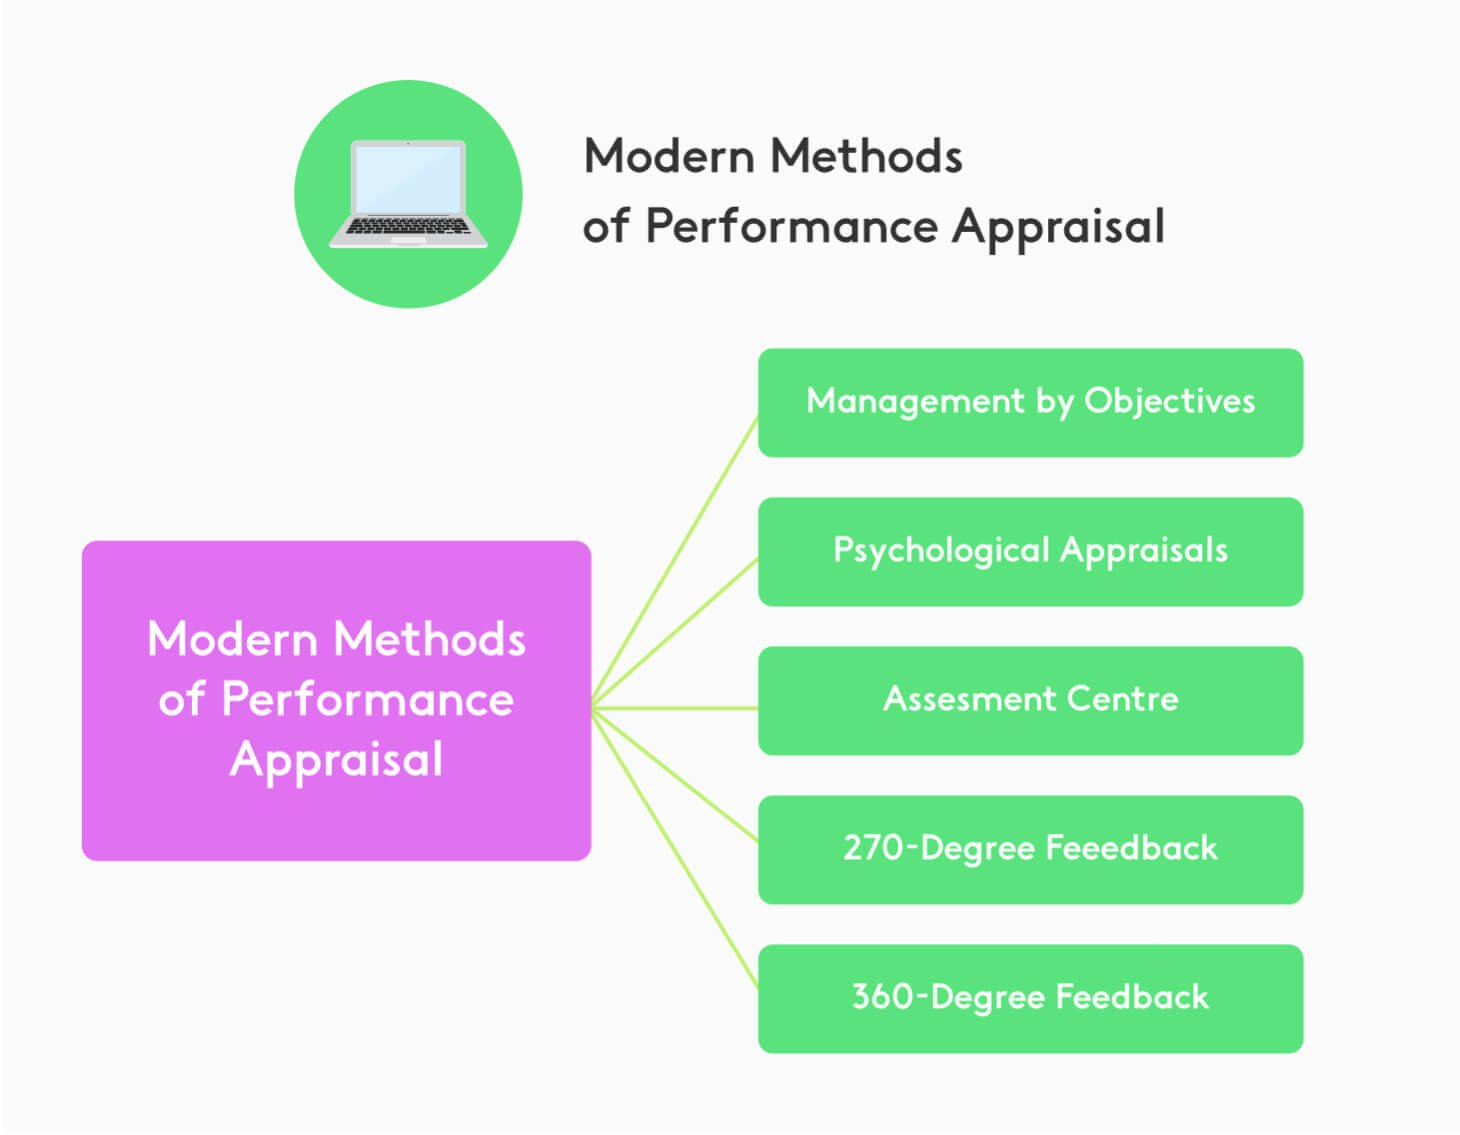 Diagram with the new methods of performance appraisal